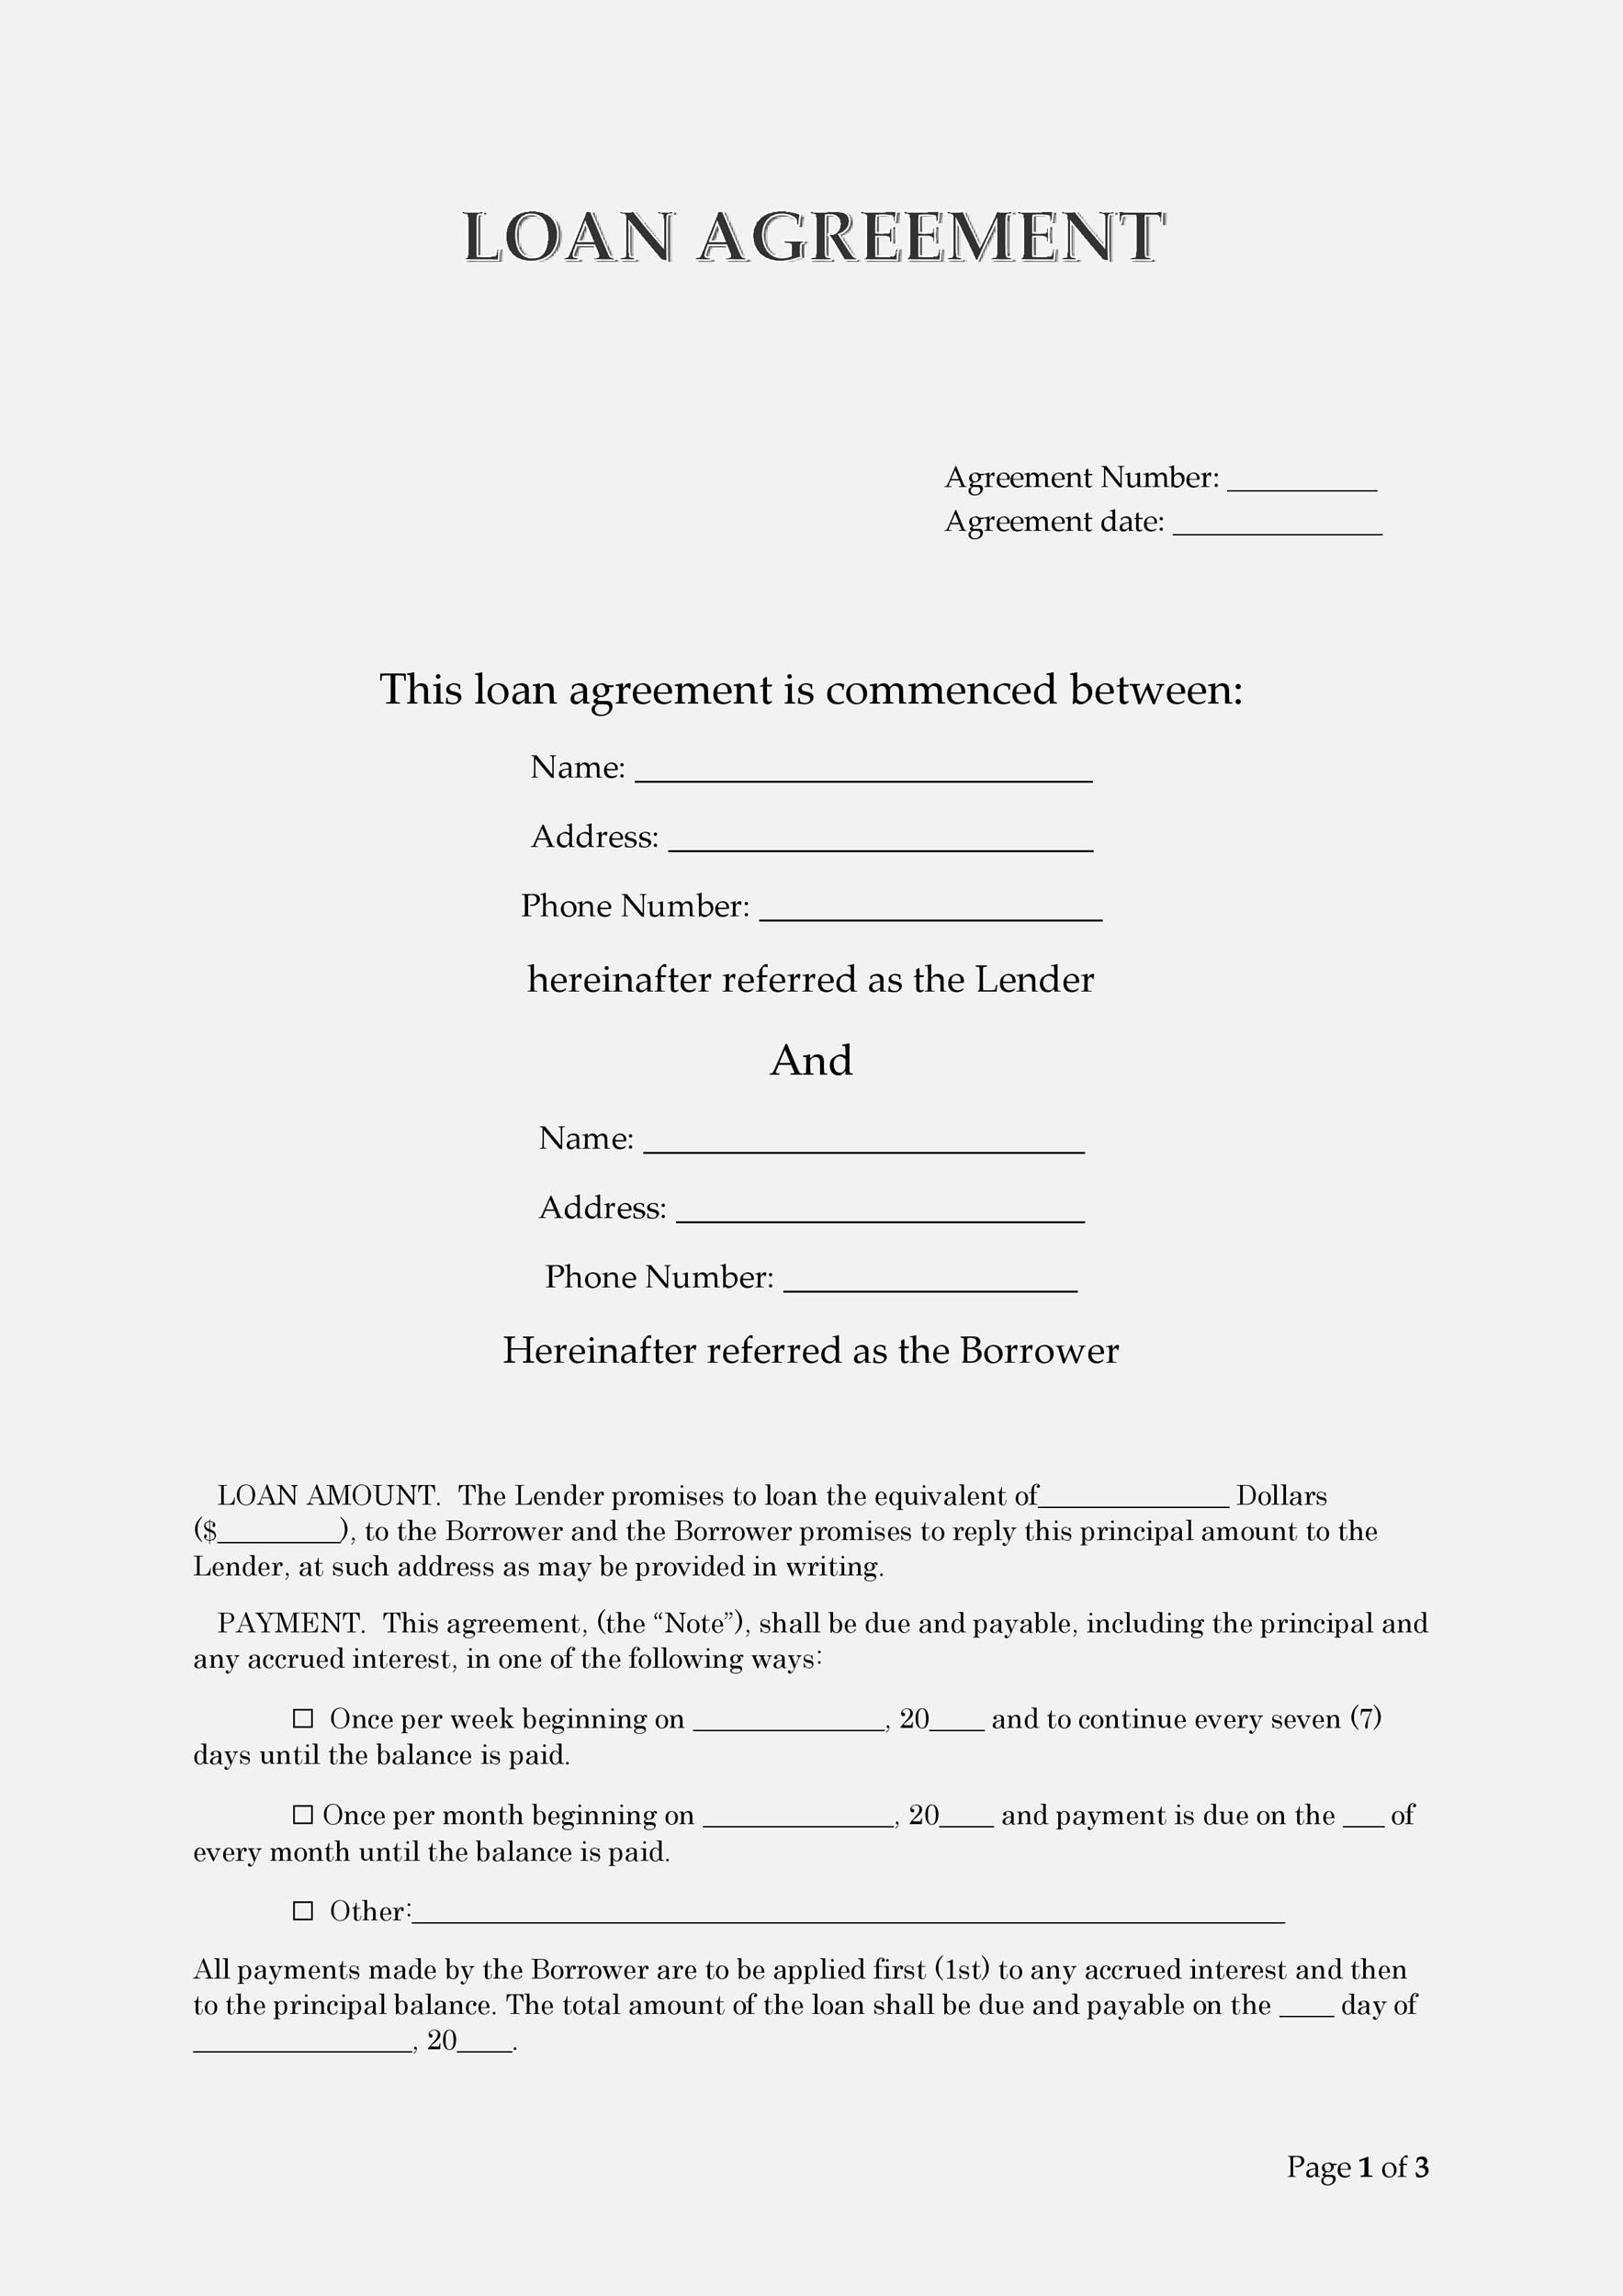 006 Unforgettable Free Loan Agreement Template Inspiration  Ontario Word Pdf Australia South AfricaFull